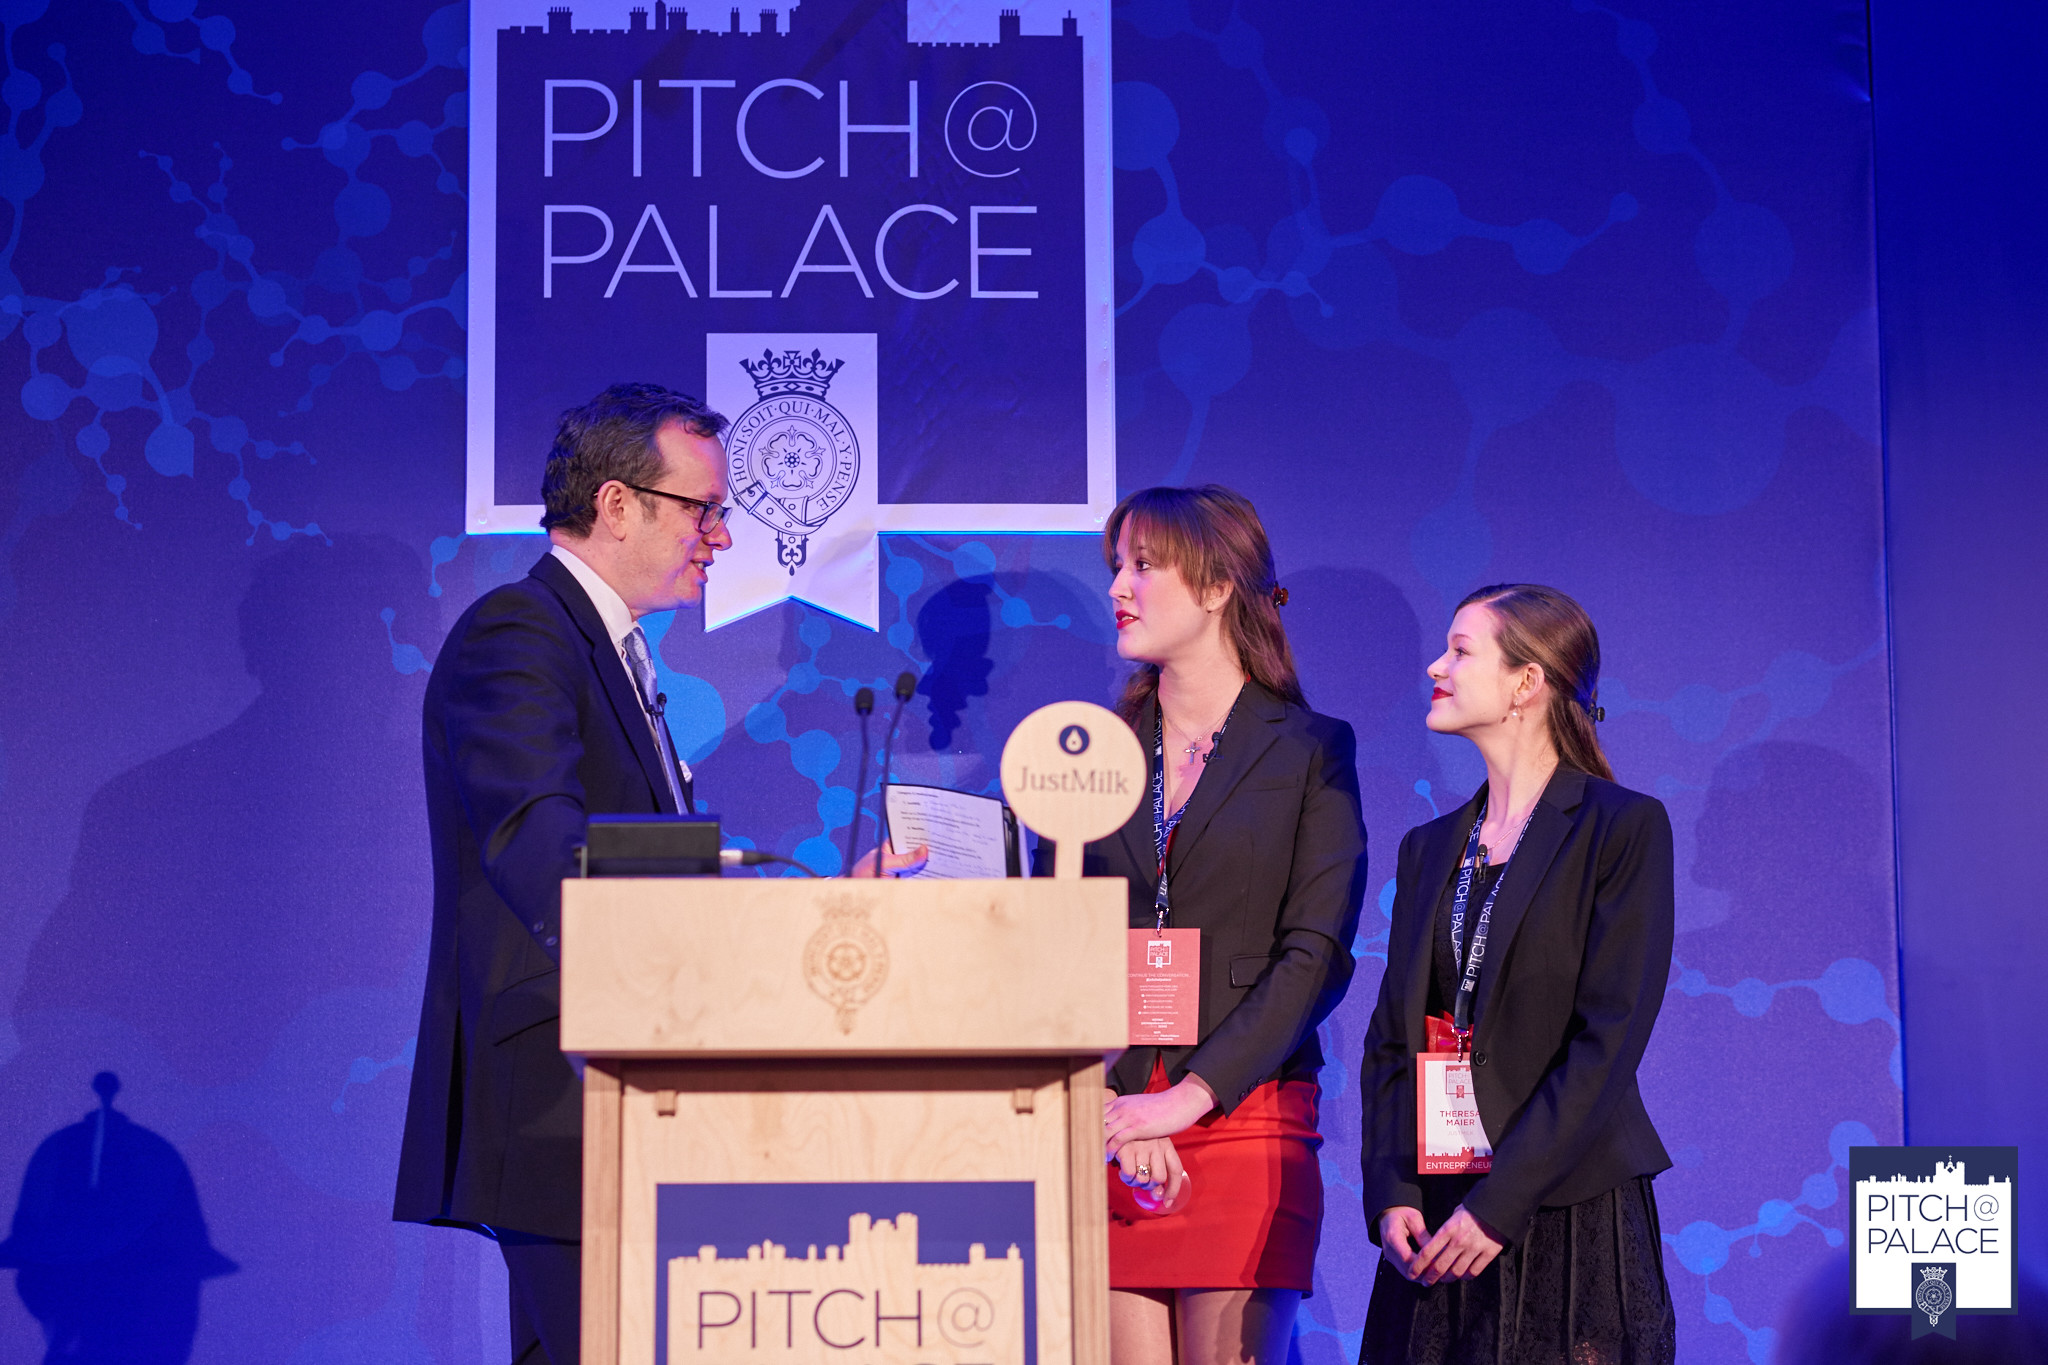 JustMilk wins Pitch@Palace competition